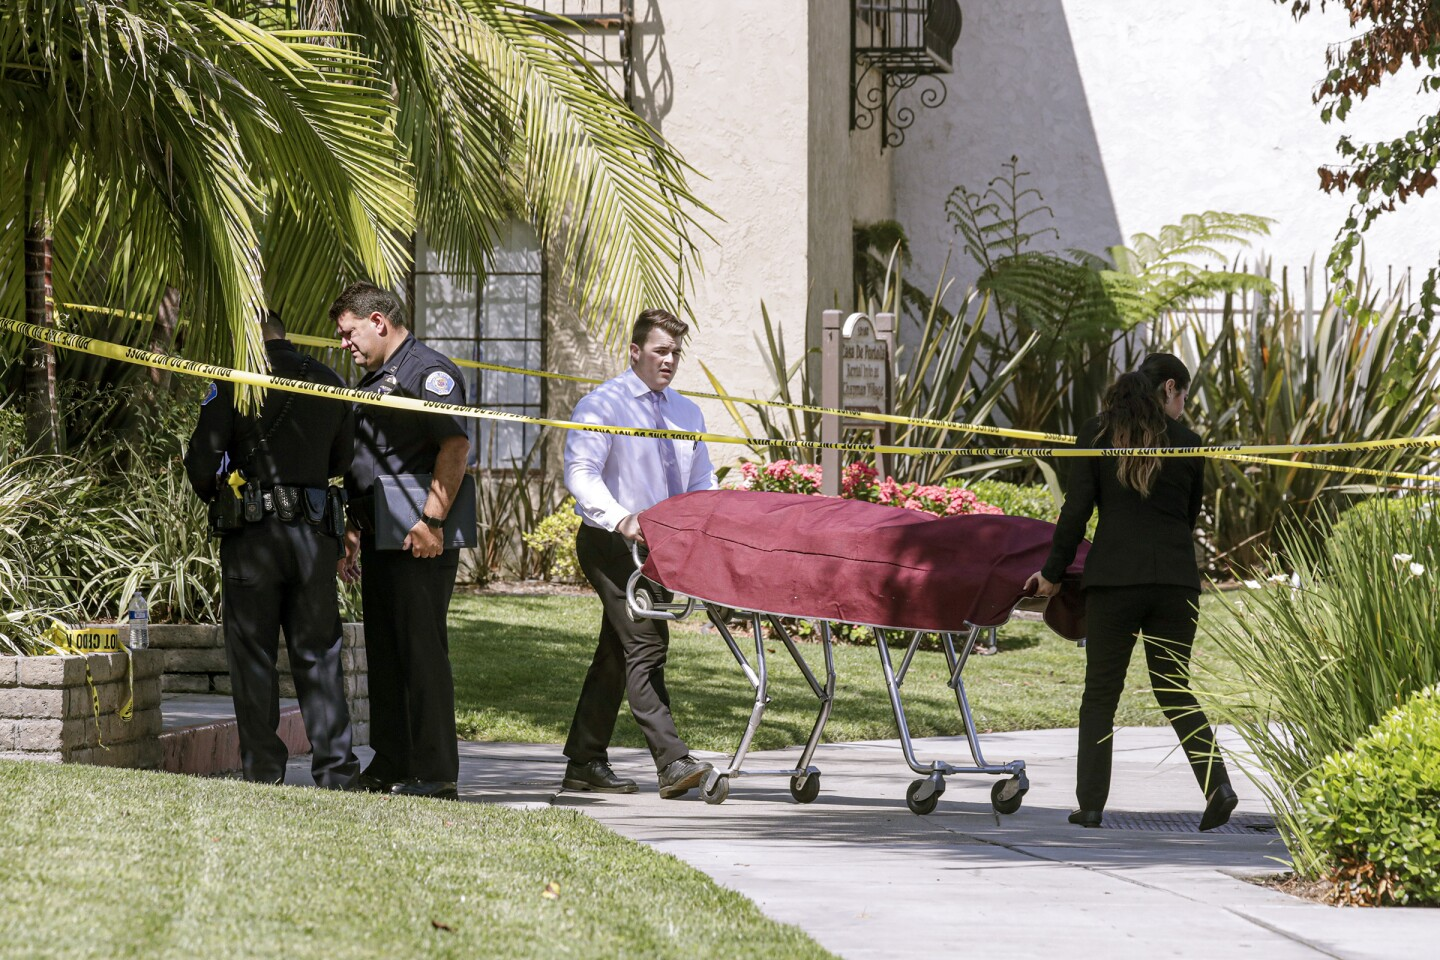 GARDEN GROVE, CA - AUGUST 07, 2019 — Coroners removing the one of the two shooting victims from Casa De Portola apartment complex on 12162 Jentges Ave. Thursday August 08, 2017 morning in Garden Grove. A man stabbed to death two people yesterday before getting on crime spree and killing two more in Orange County. (Irfan Khan/Los Angeles Times)